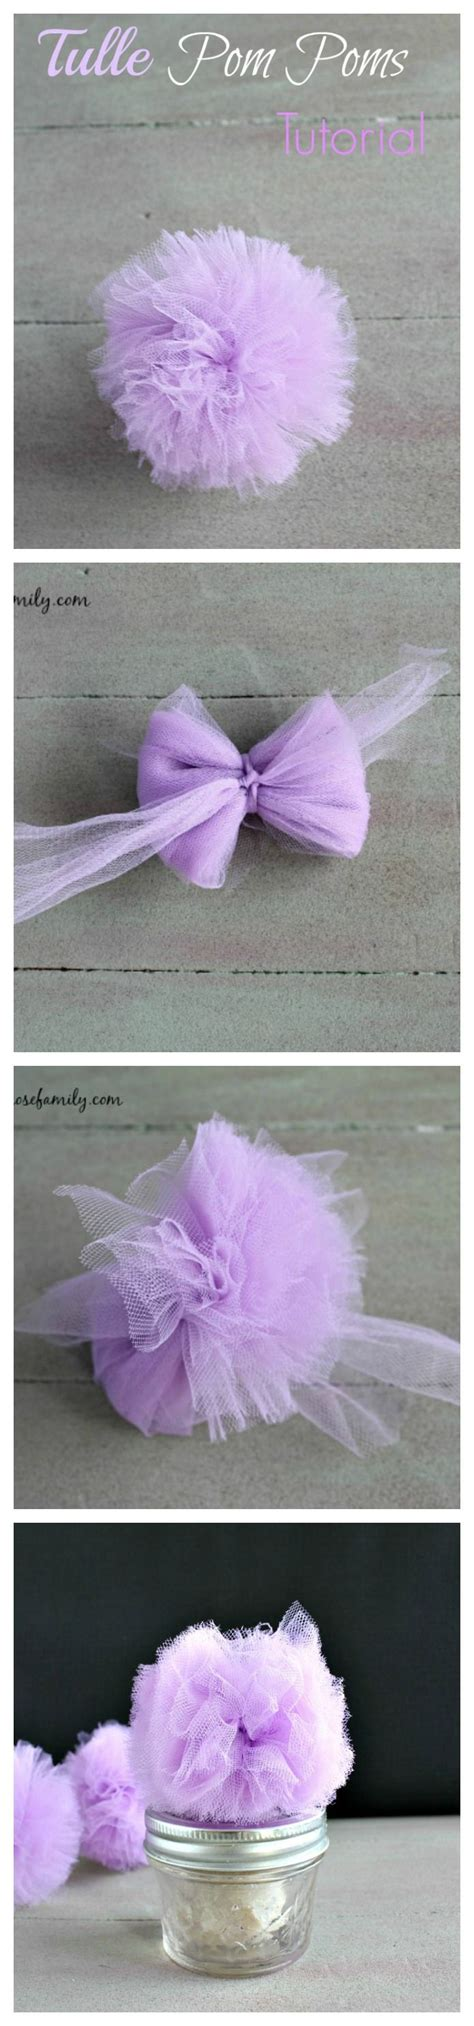 tulle craft projects best 25 tulle poms ideas on tulle pom tulle